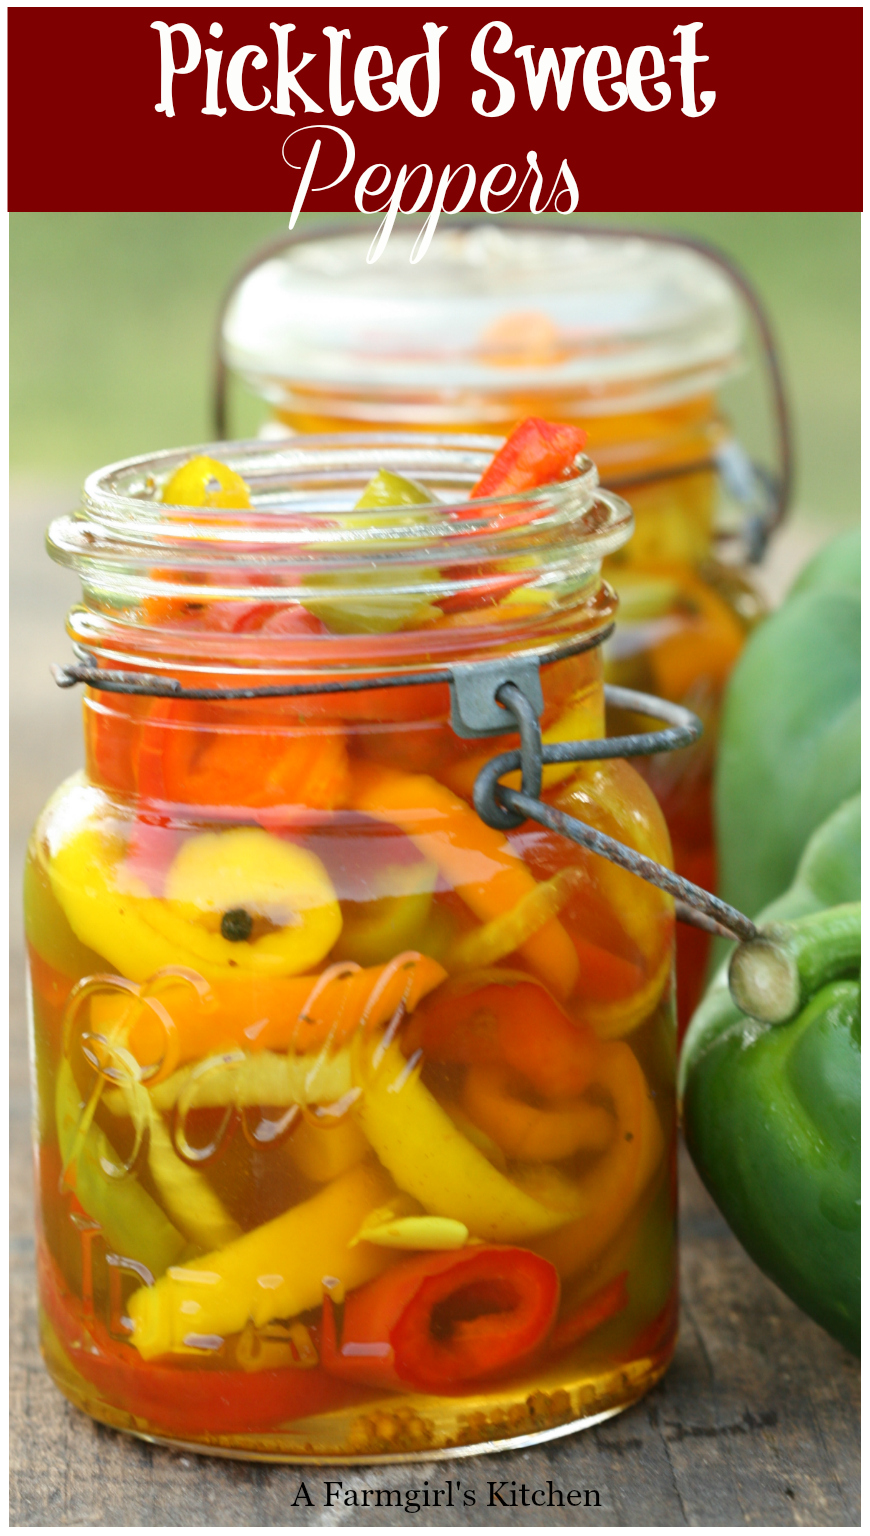 Get the #recipe for these amazing Pickled Sweet Peppers. So easy to make with only a few simple ingredients. #foodblogger #pickled #pickledpeppers #canning #farmkitchen #recipes